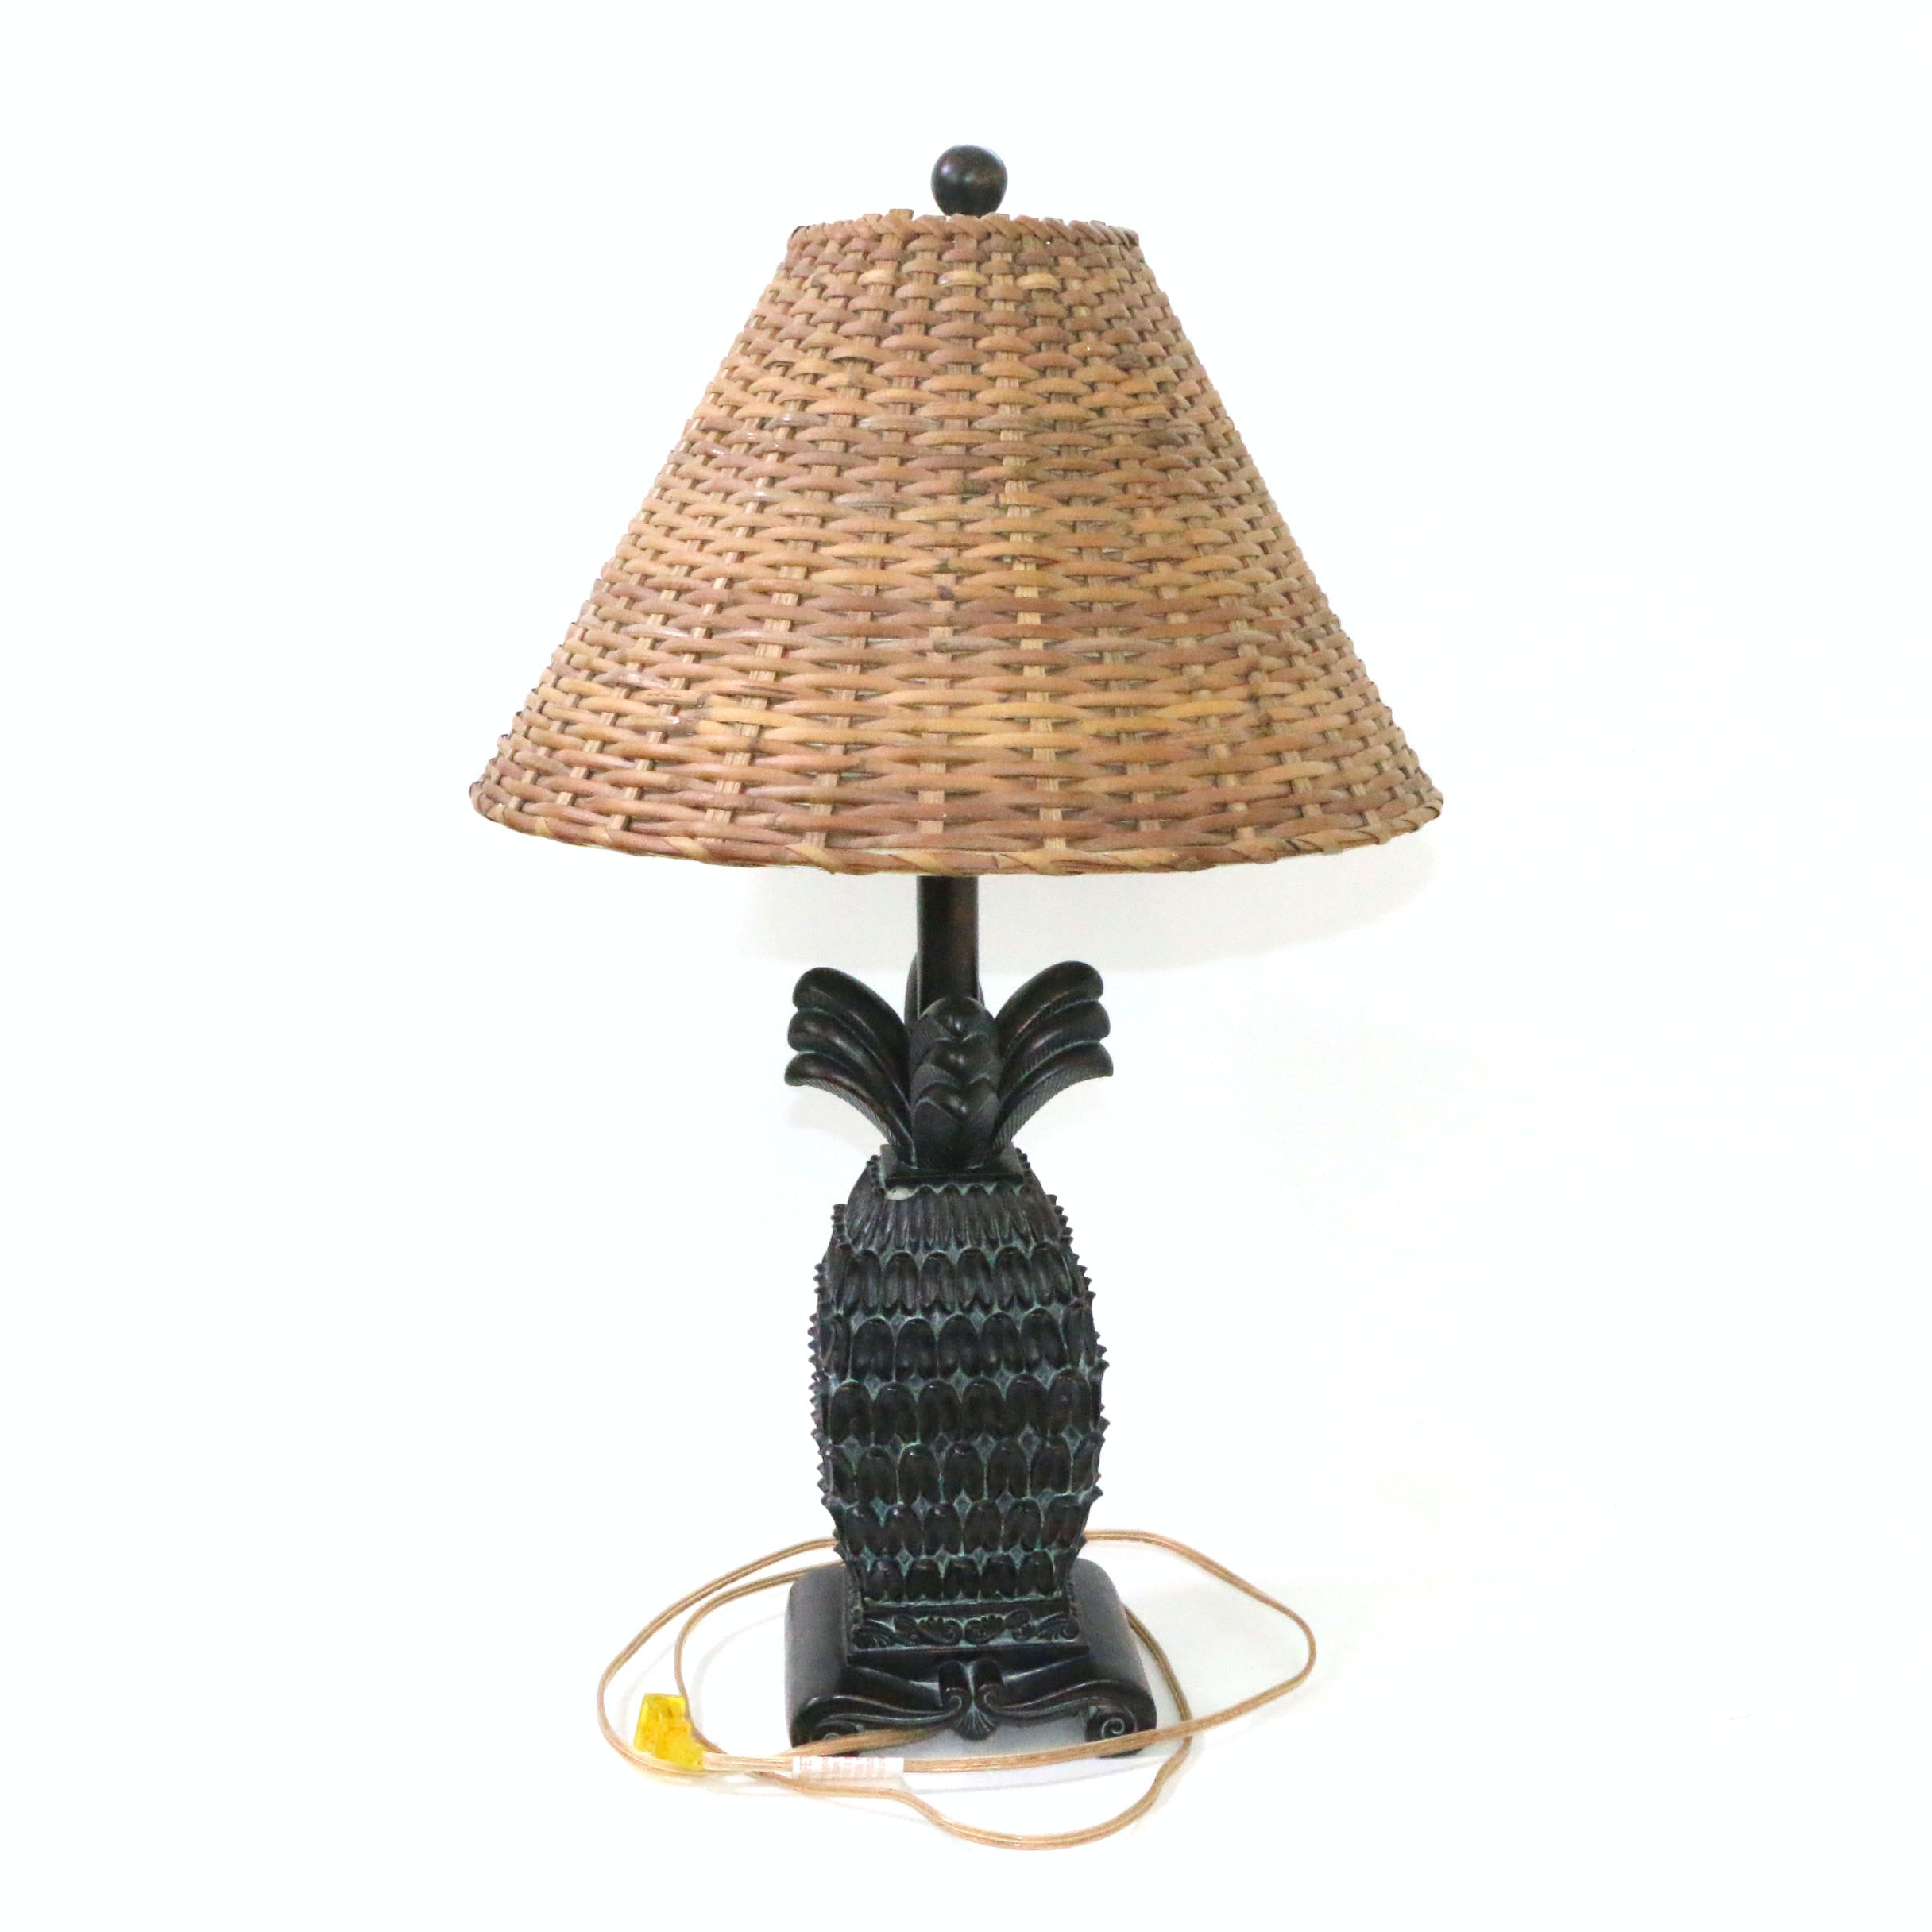 Resin Pineapple Accent Lamp with Wicker Shade